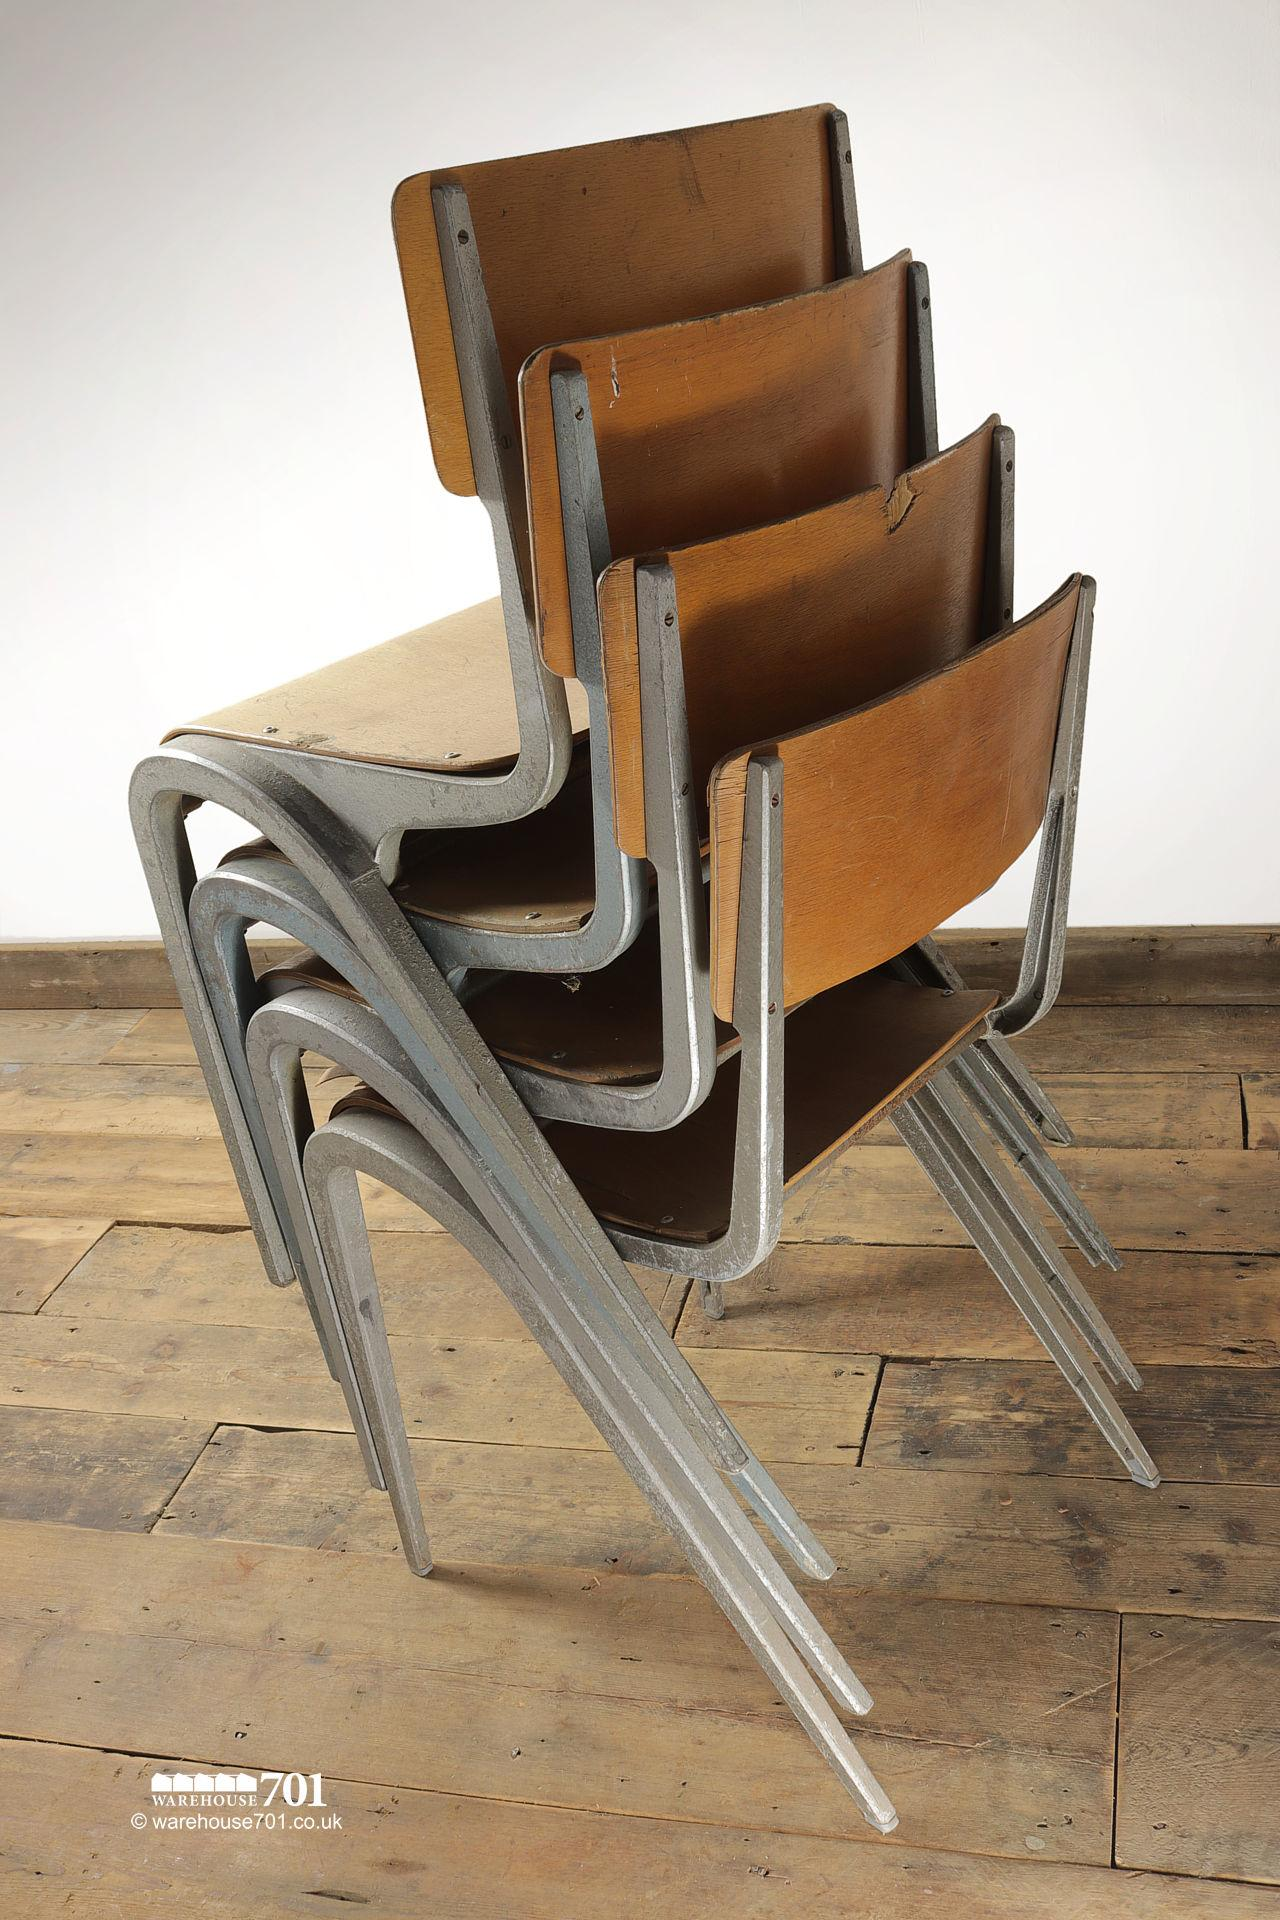 Vintage 1950s Esavian Alloy & Ply Stacking Chairs #6